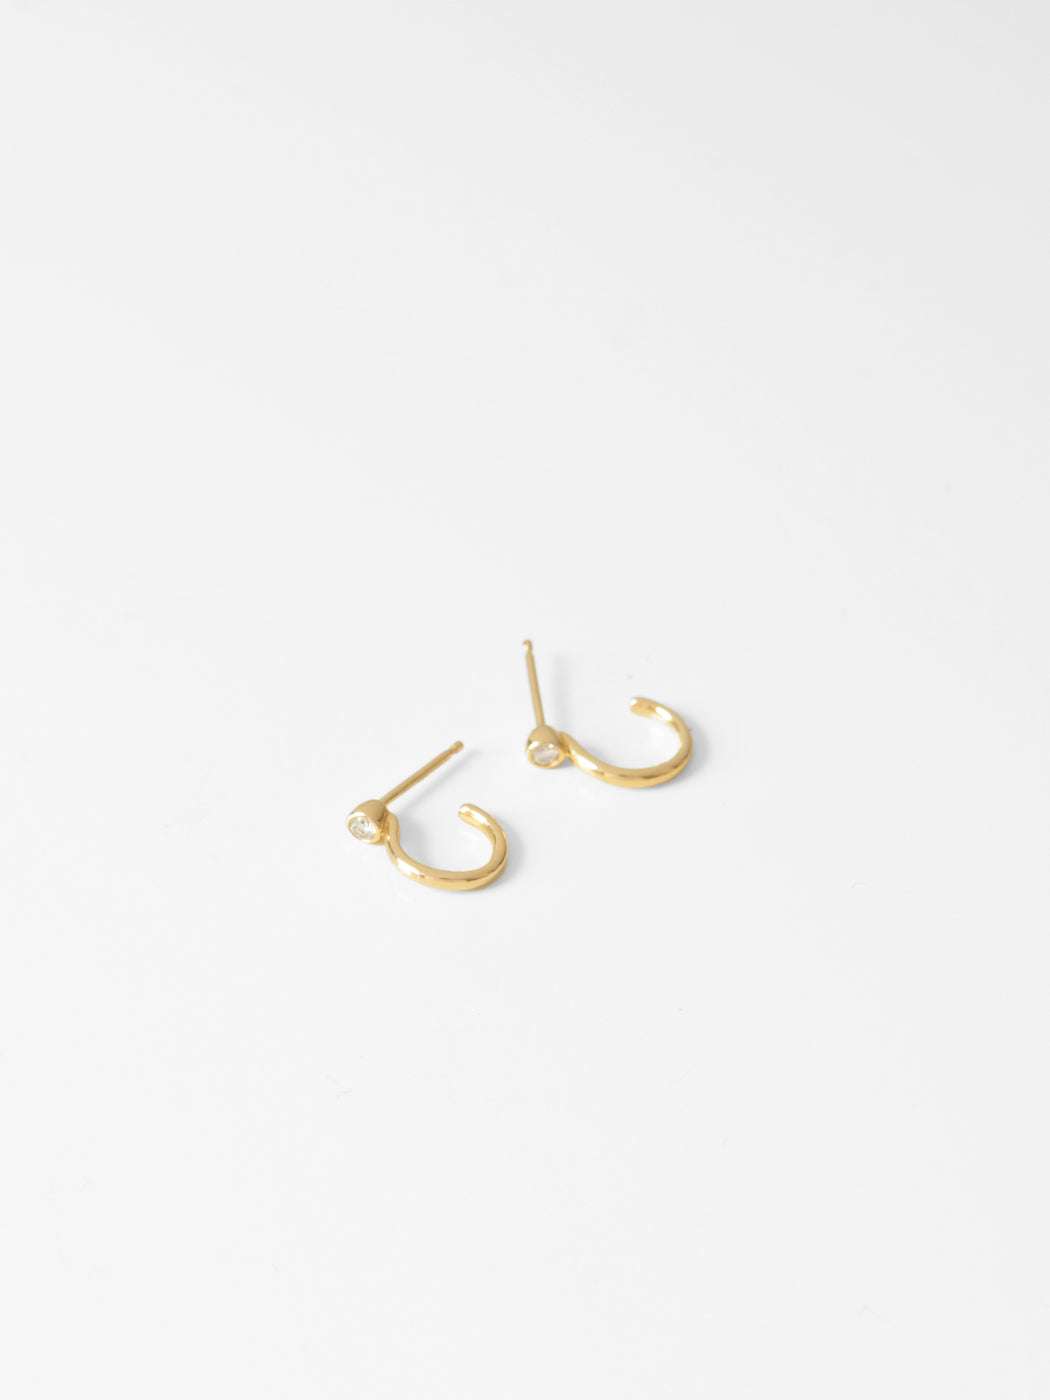 Marion Hugger Hoops / 12mm  / 14k Yellow Gold / White Diamond